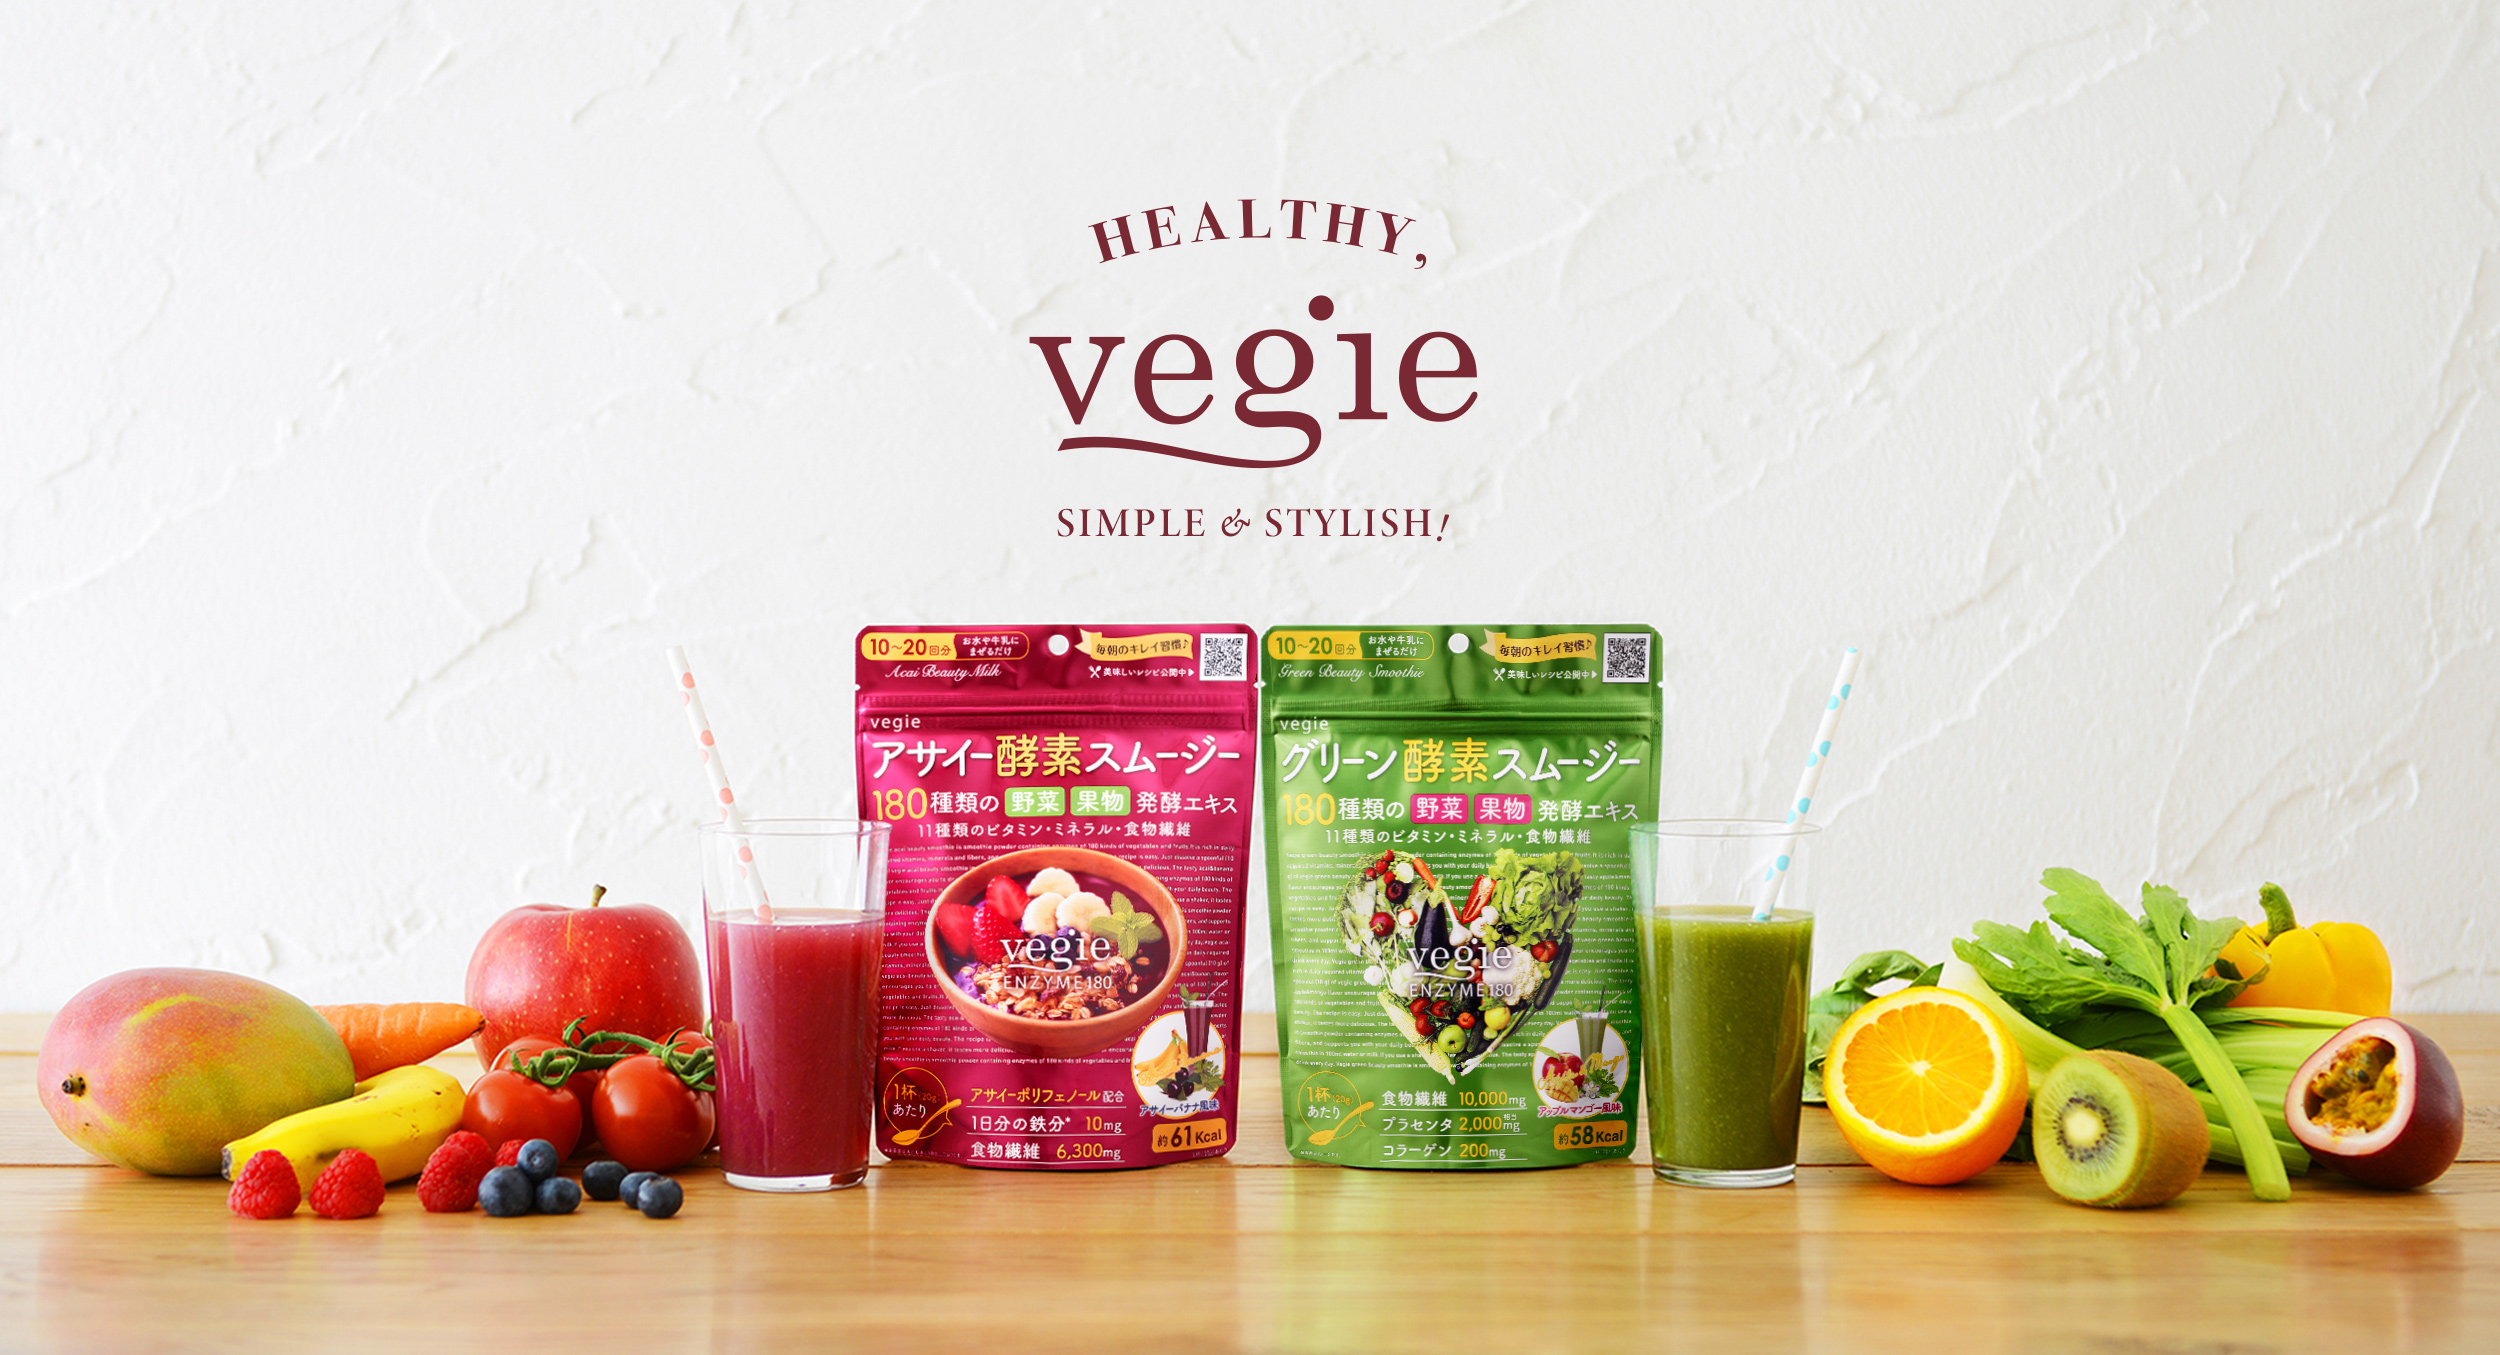 vegie HEALTHY,SIMPLE&STYLISH!